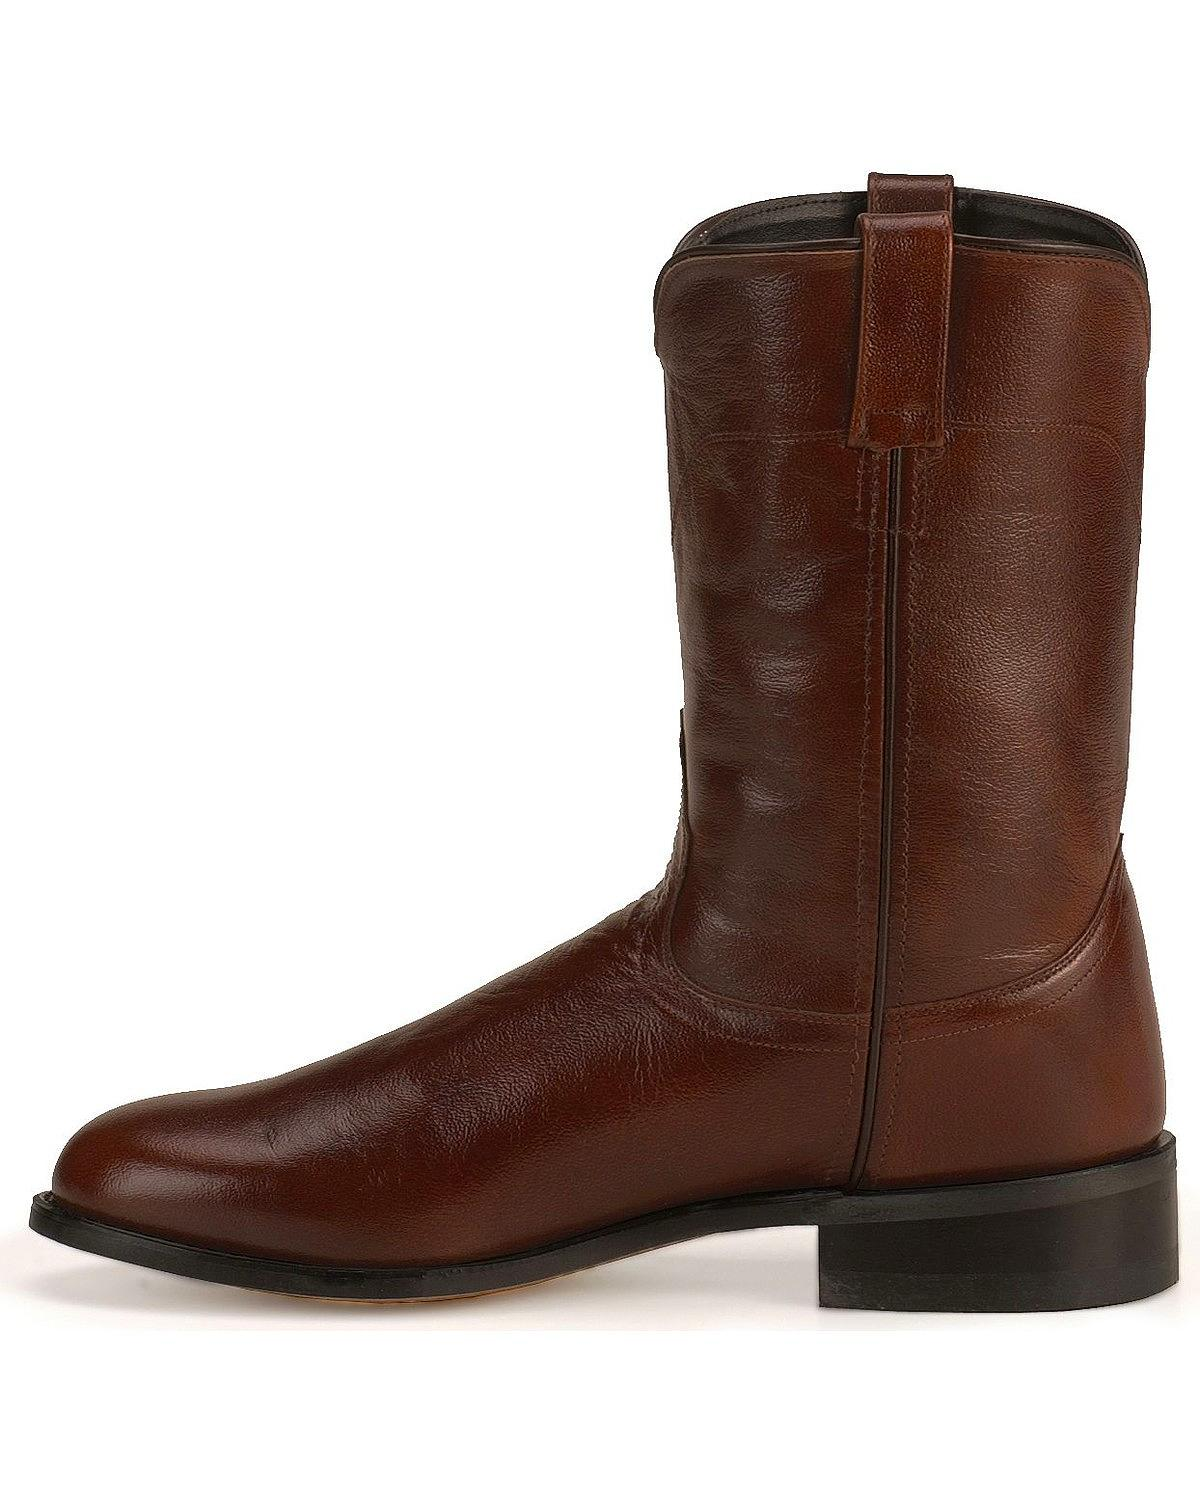 west s leather roper cowboy boot srm4051 ebay